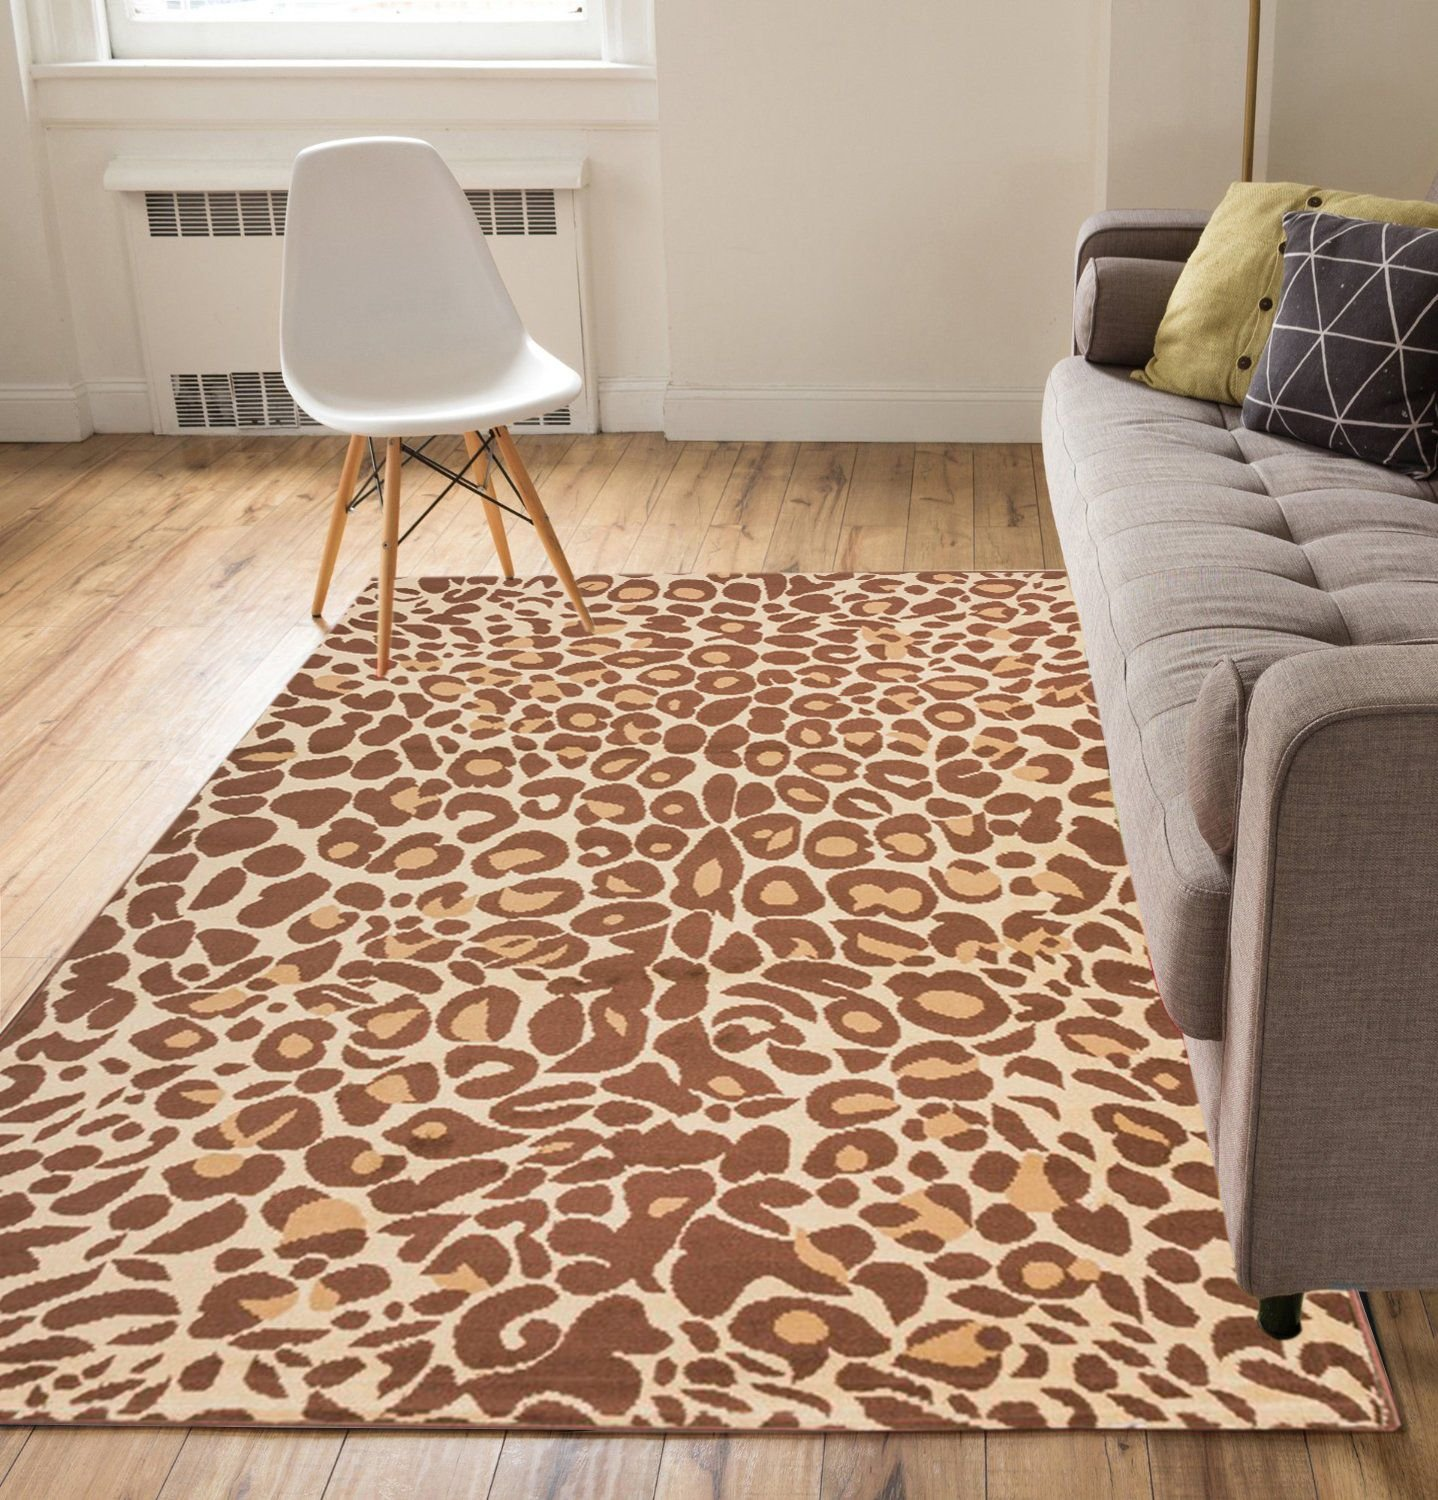 Well Woven Leopard Brown 3'3'' x 5' Area Rug Carpet